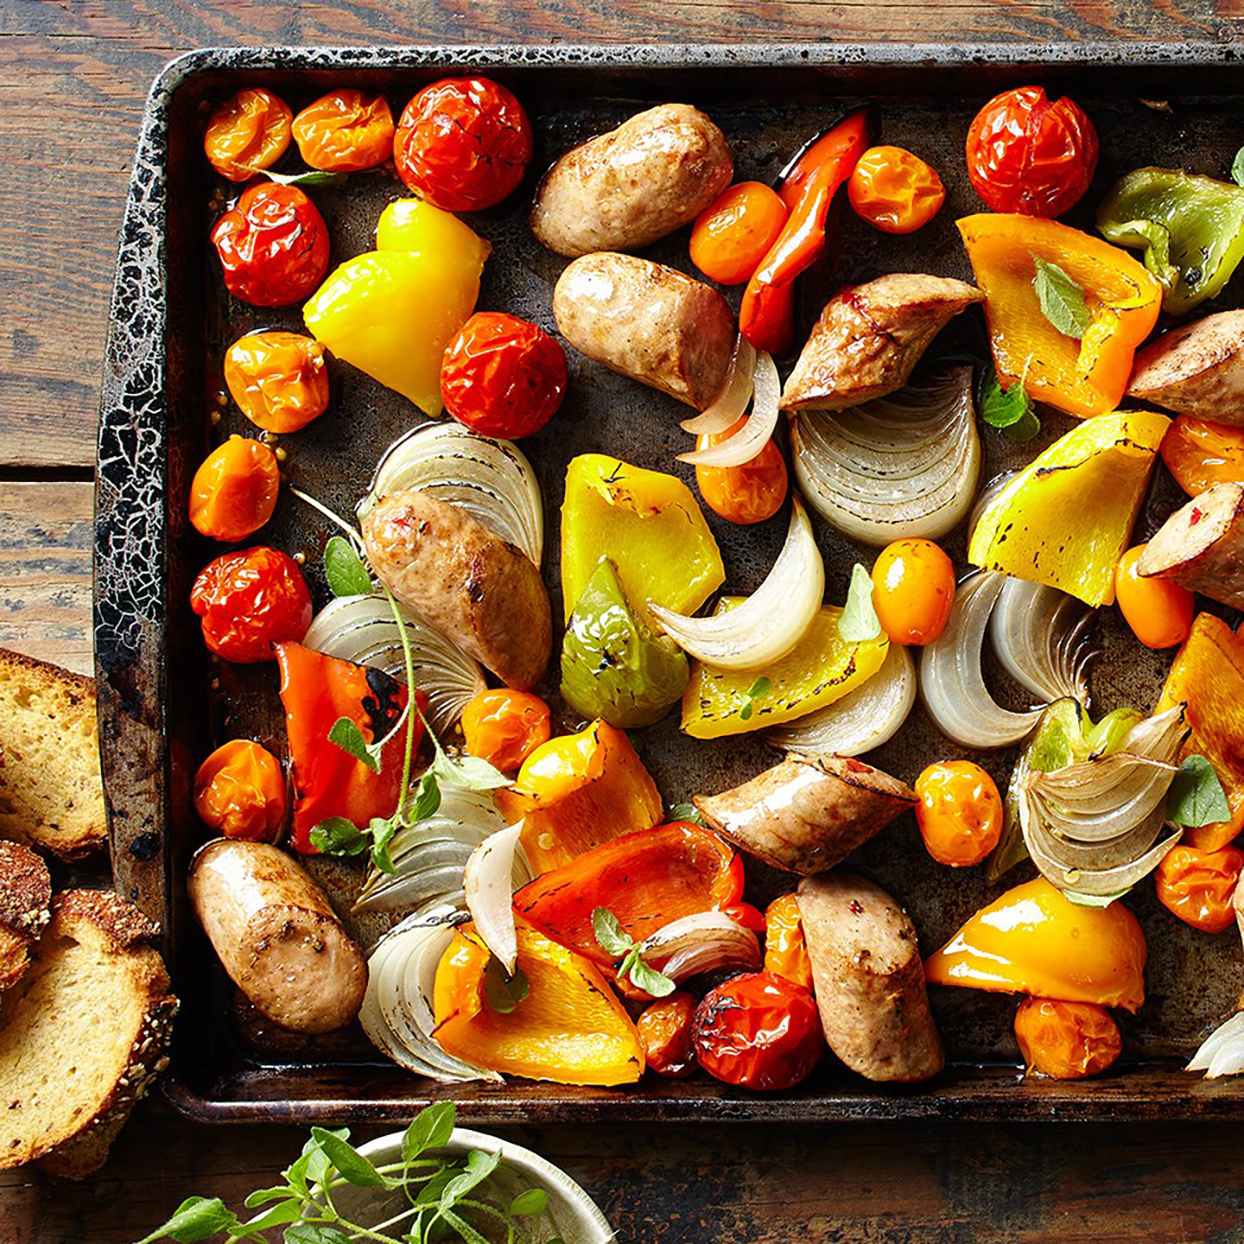 Colorful peppers and tomatoes and sweet onion make this sausage dinner pop with fresh flavor. Roasting instead of sautéing makes this even easier for a busy weeknight. Source: Diabetic Living Magazine